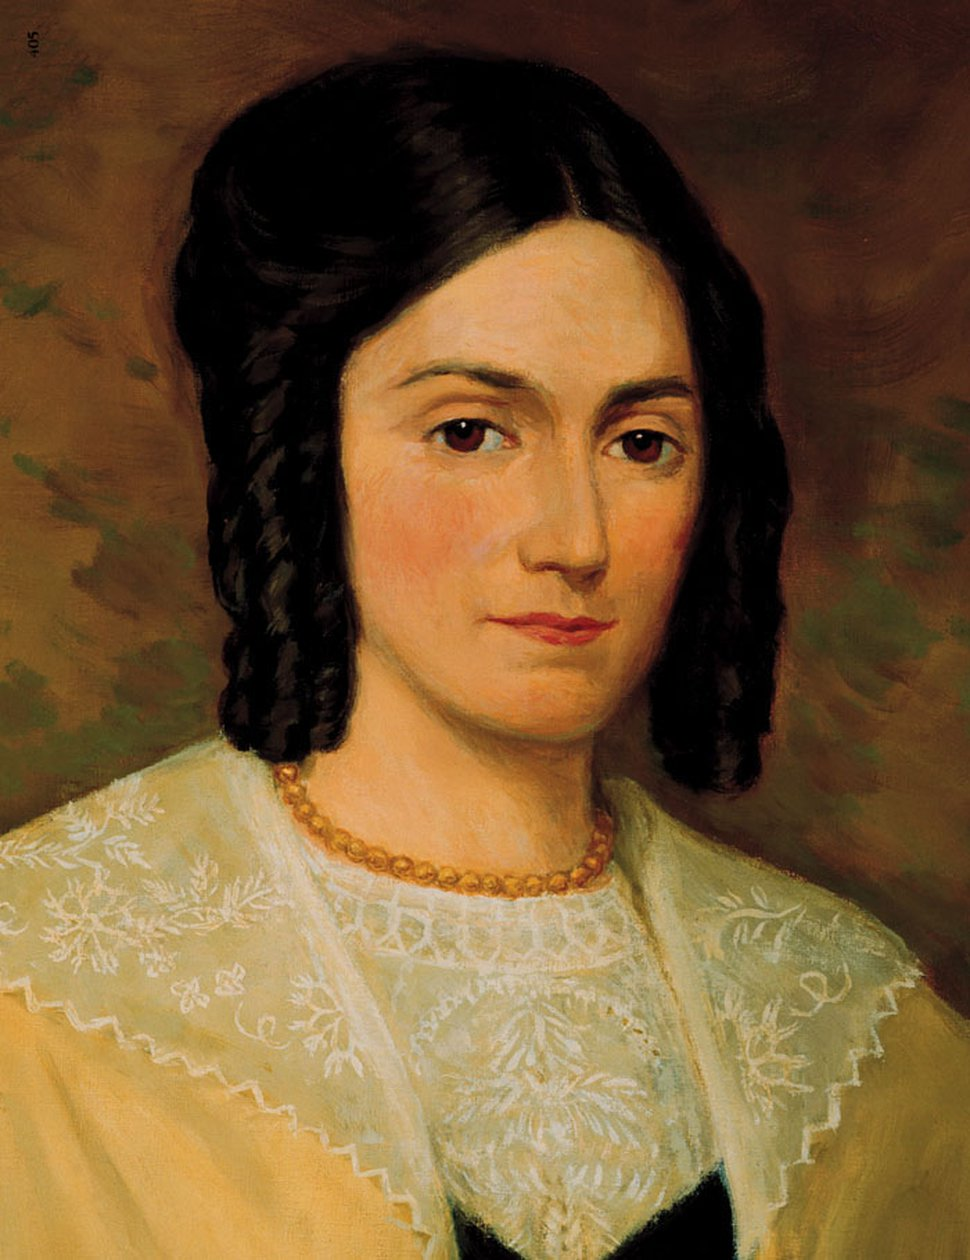 (Photo courtesy of The Church of Jesus Christ of Latter-day Saints) Emma Hale Smith, wife of Mormon founder Joseph Smith.